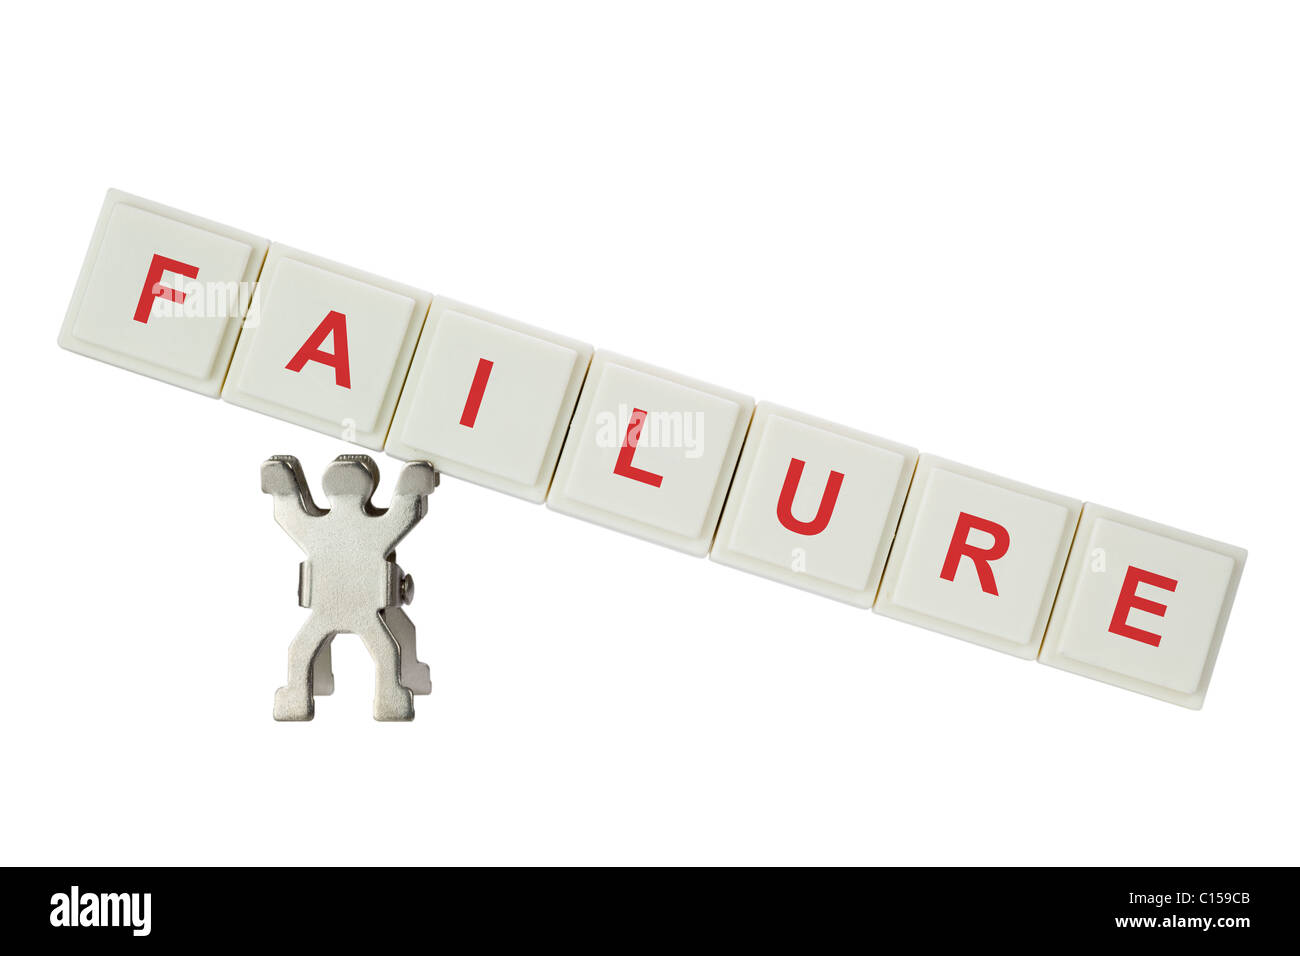 Figurine with failure isolated on white background - Stock Image